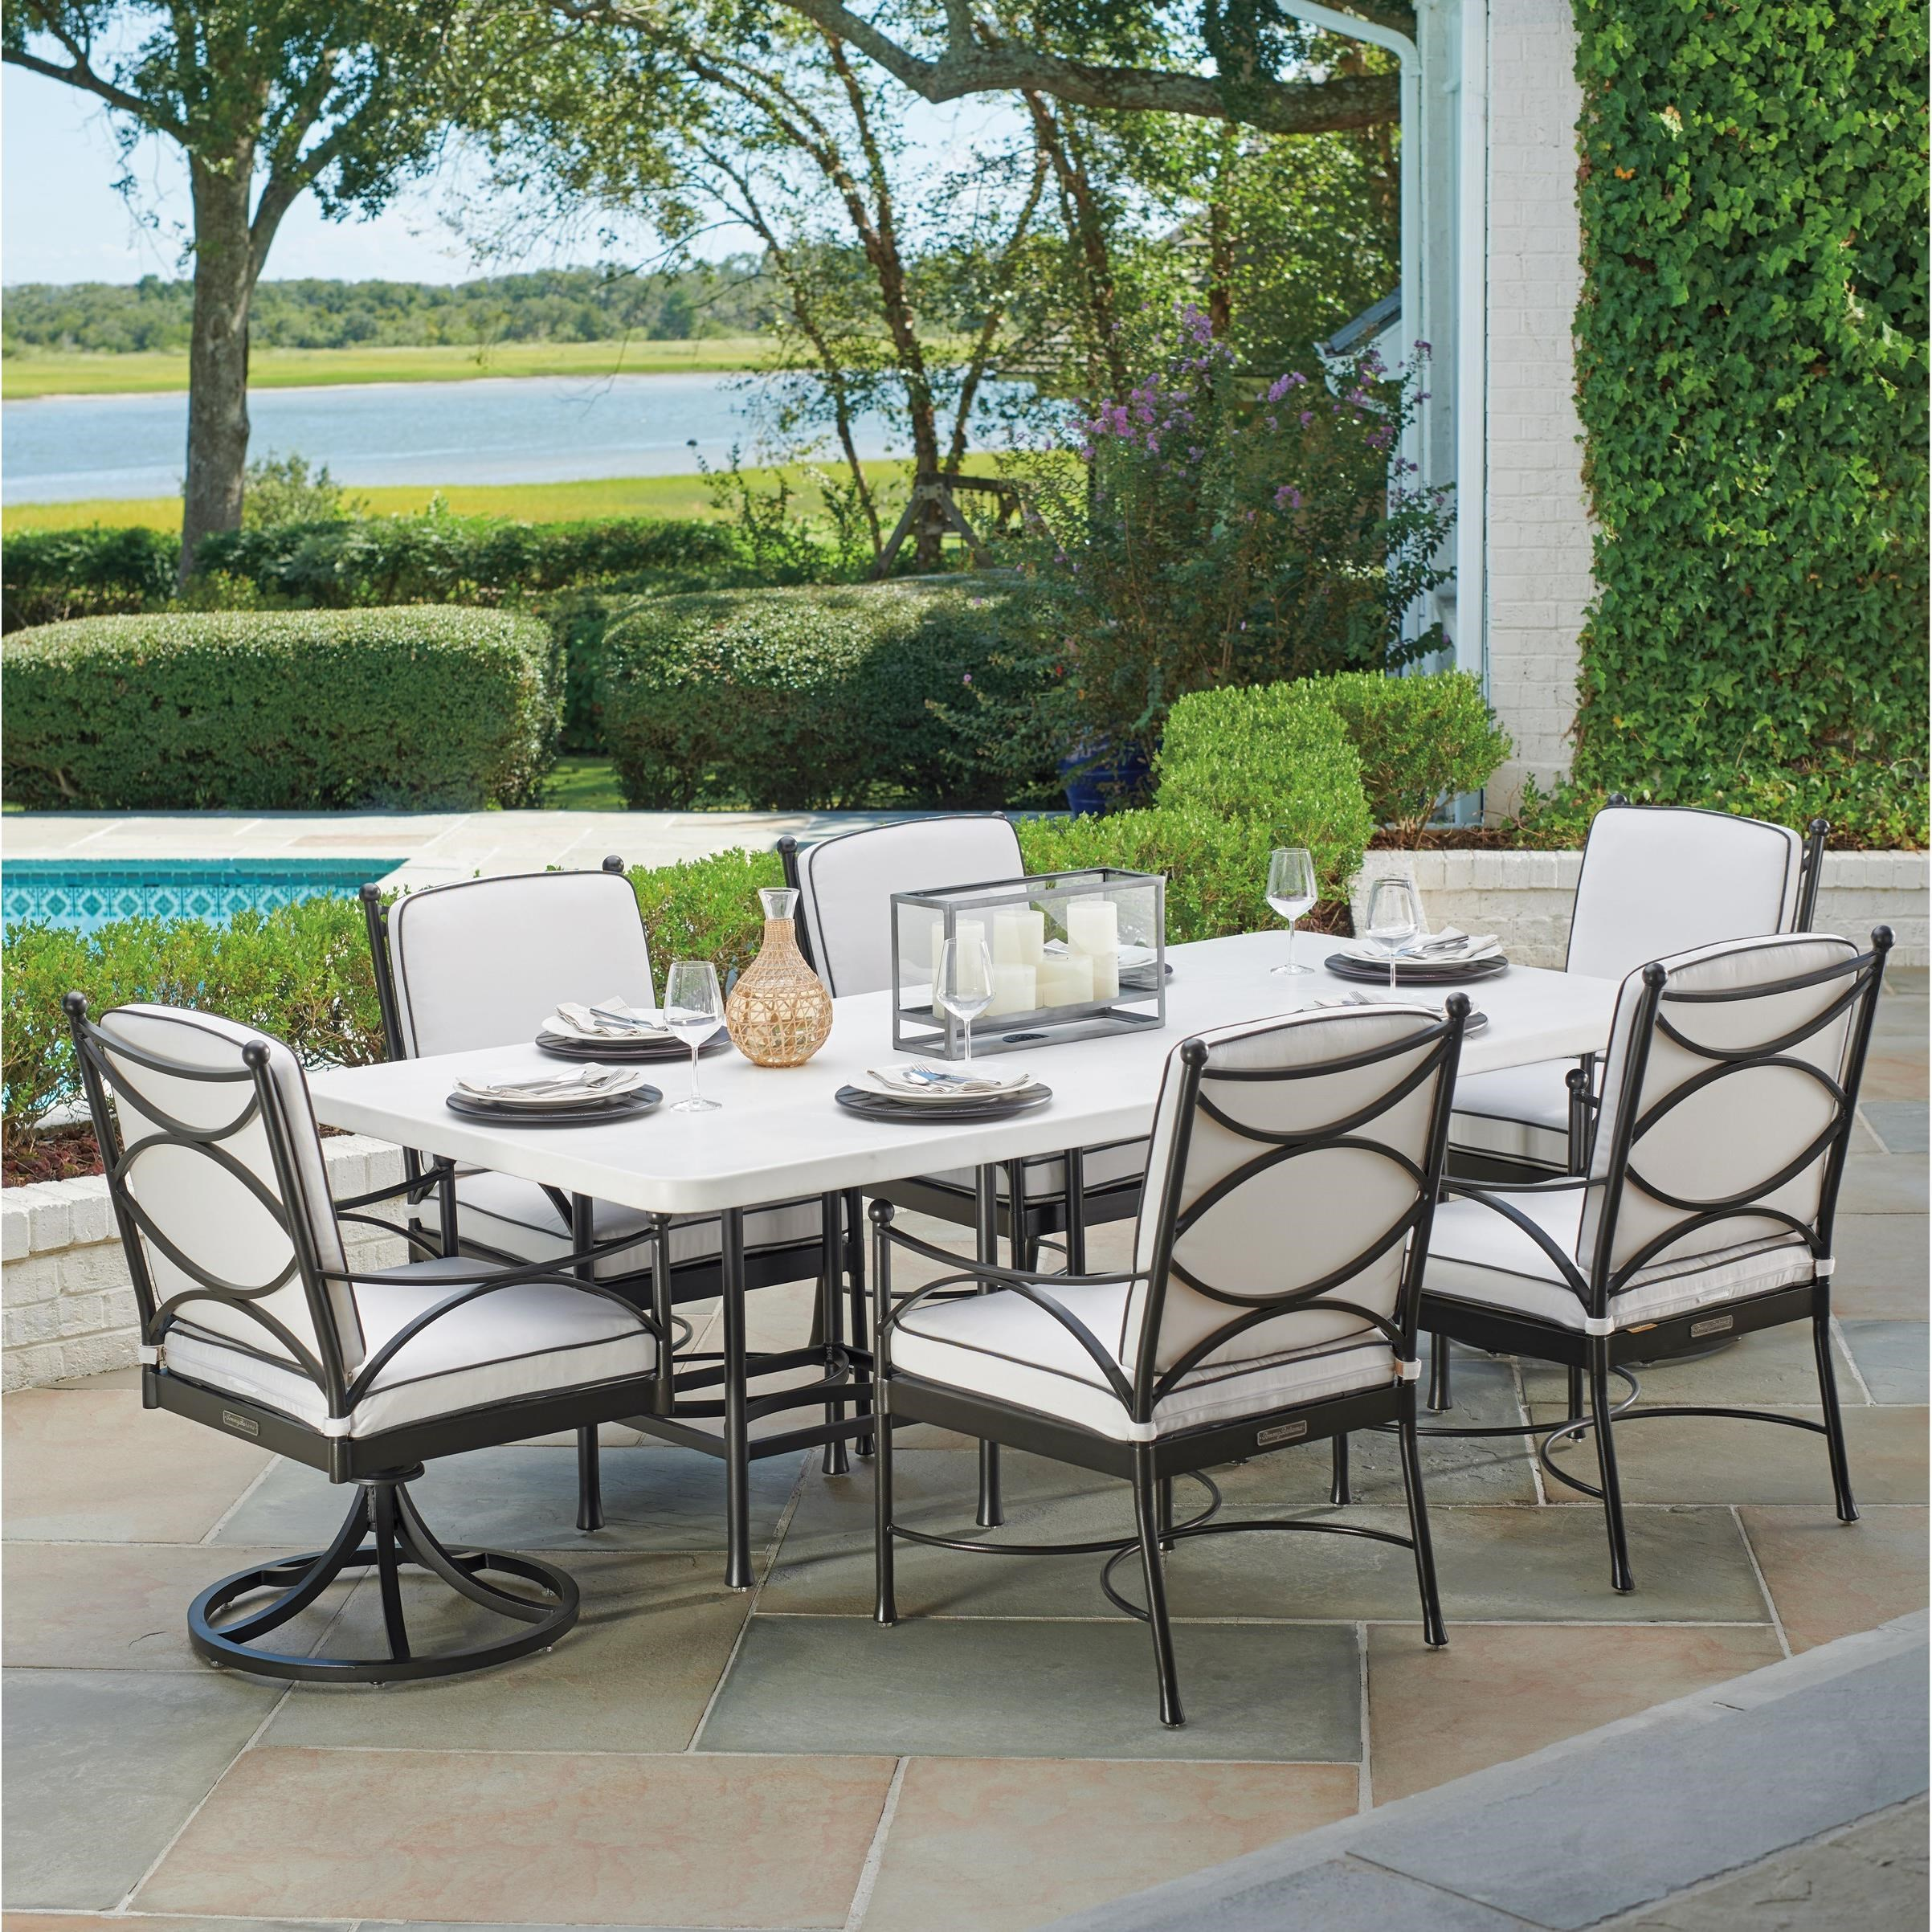 Pavlova 7 Piece Outdoor Dining Set by Tommy Bahama Outdoor Living at Baer's Furniture